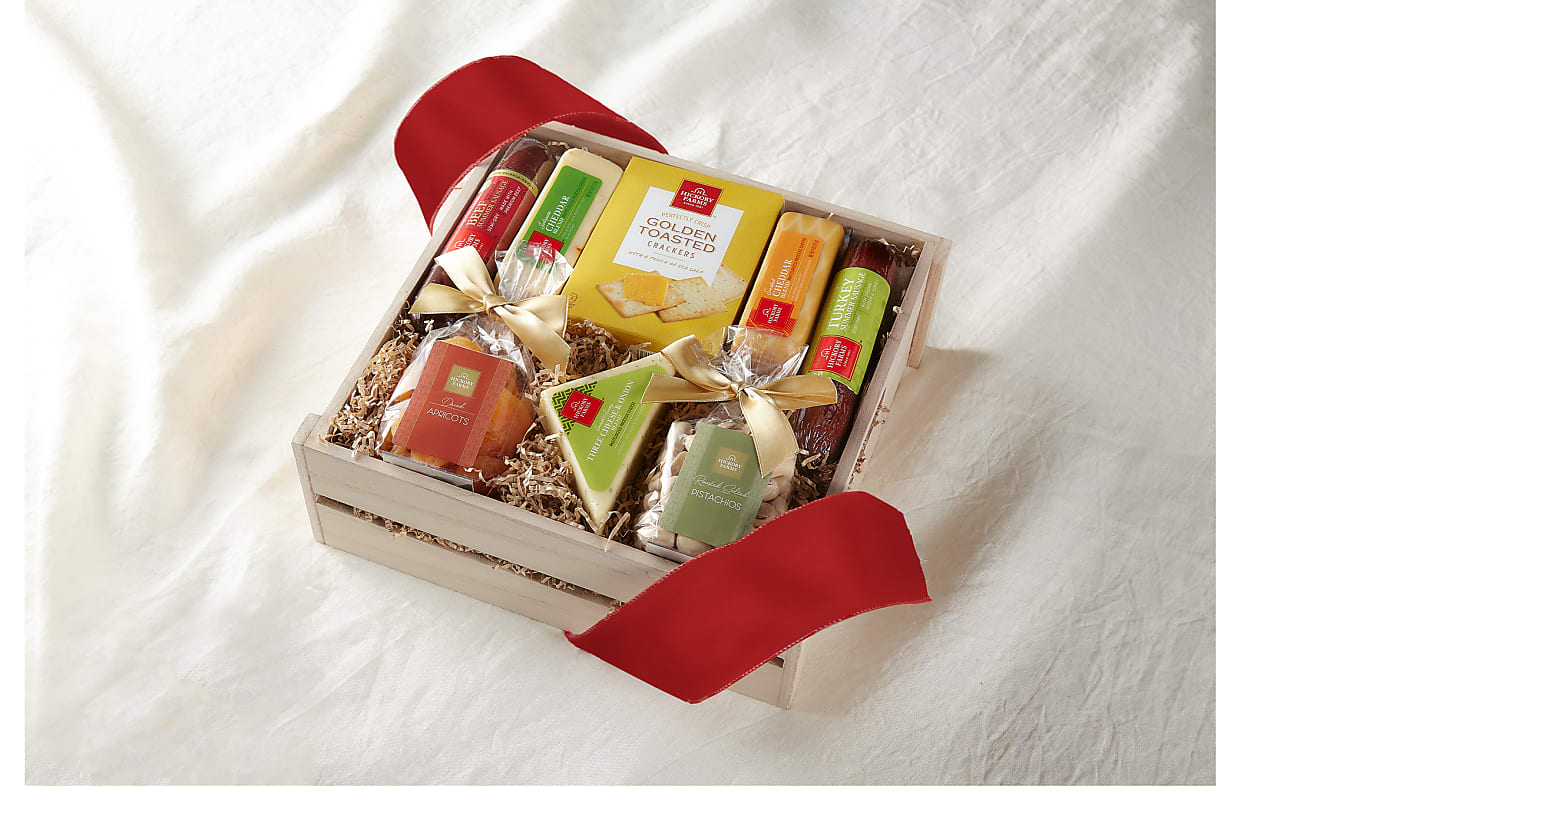 Valentine's Day Charcuterie Gift Crate - Original - Image 2 Of 2